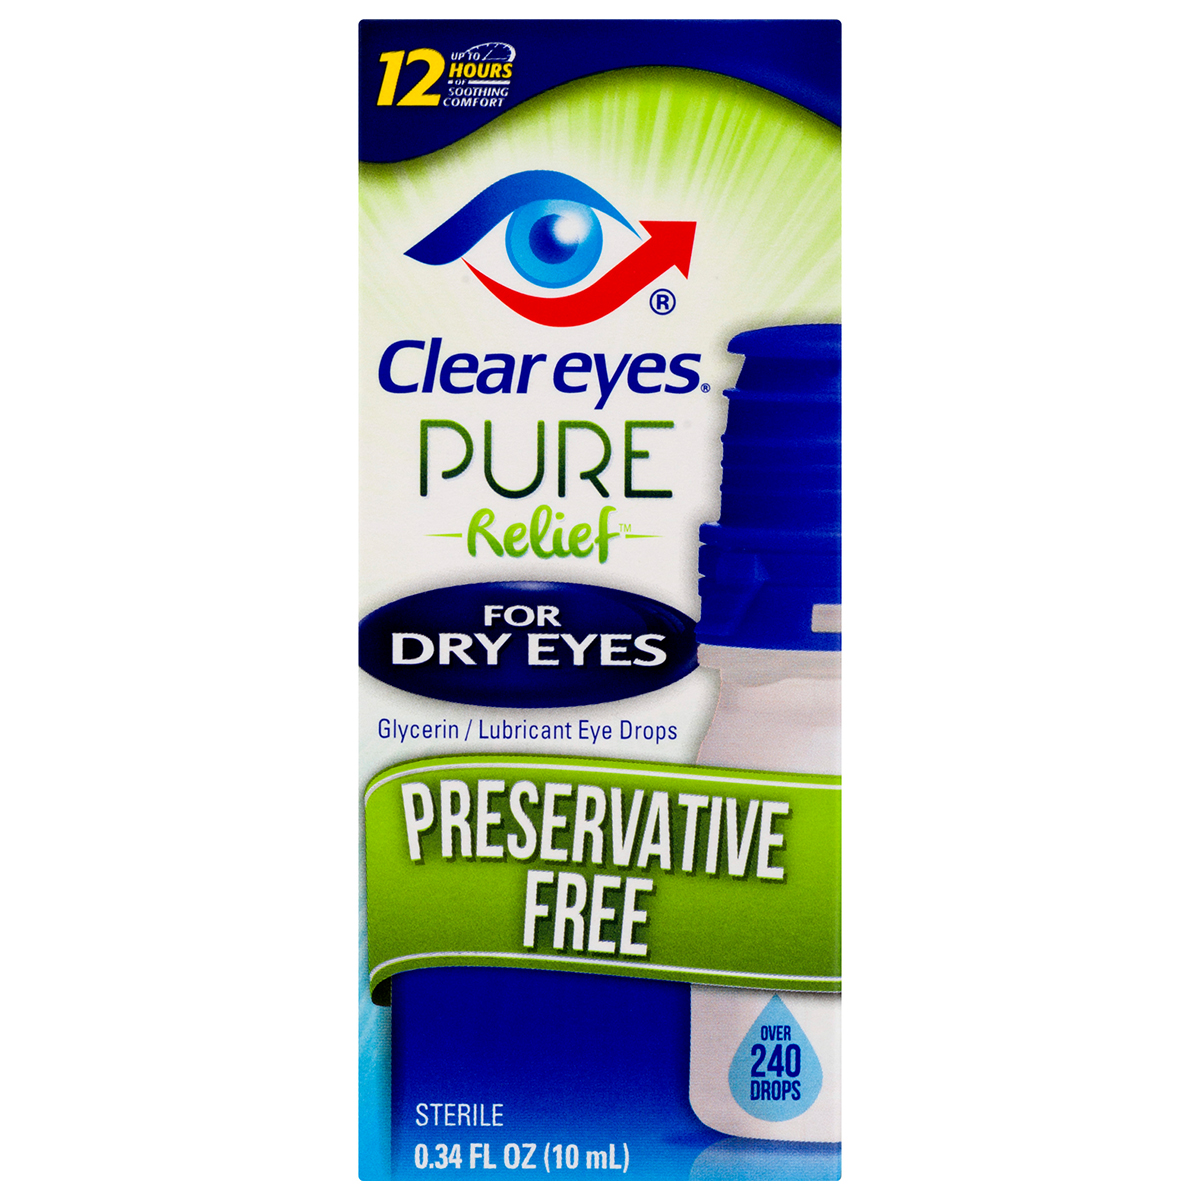 Clear Eyes Pure Relief Preservative Free Eye Drops Dry Eyes 0.34 FL OZ